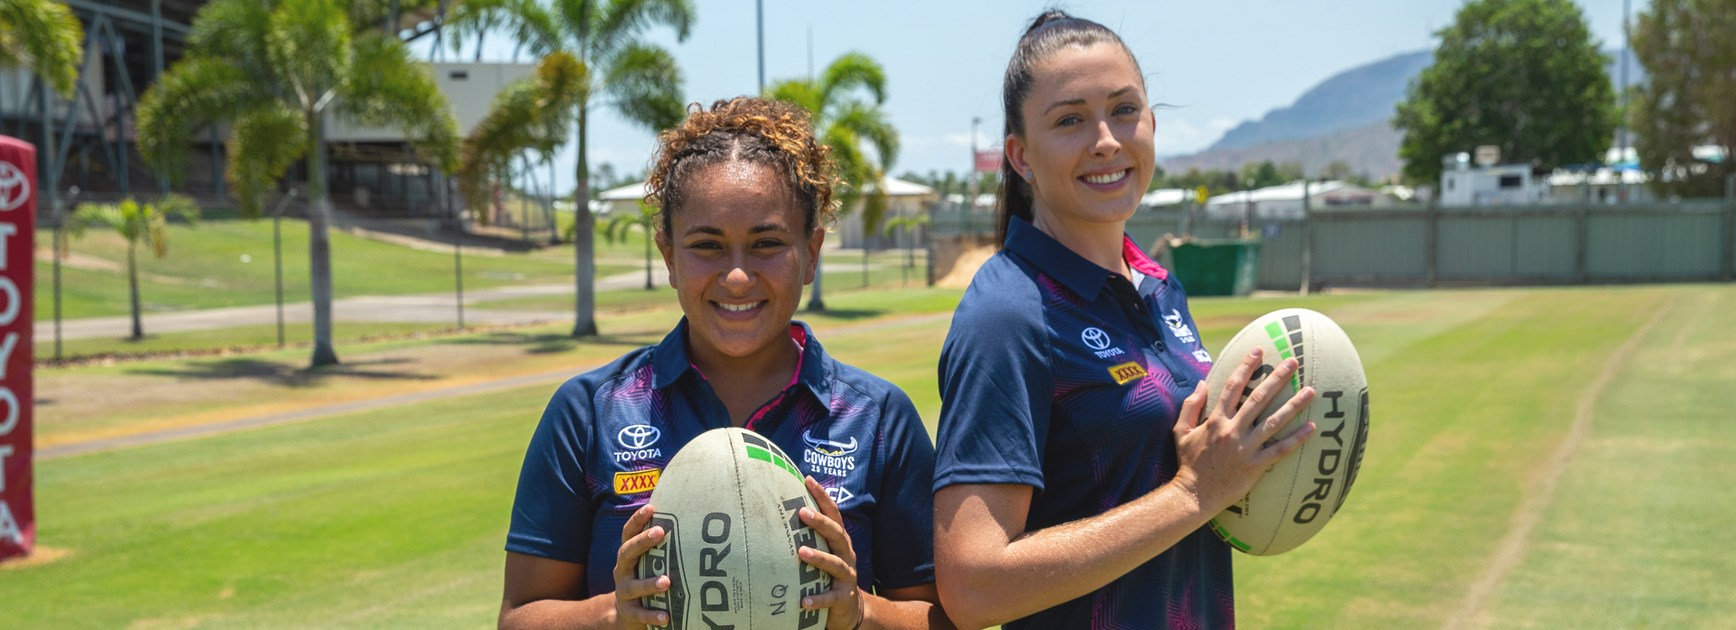 The Gold Stars are North Queensland's new QRLW team